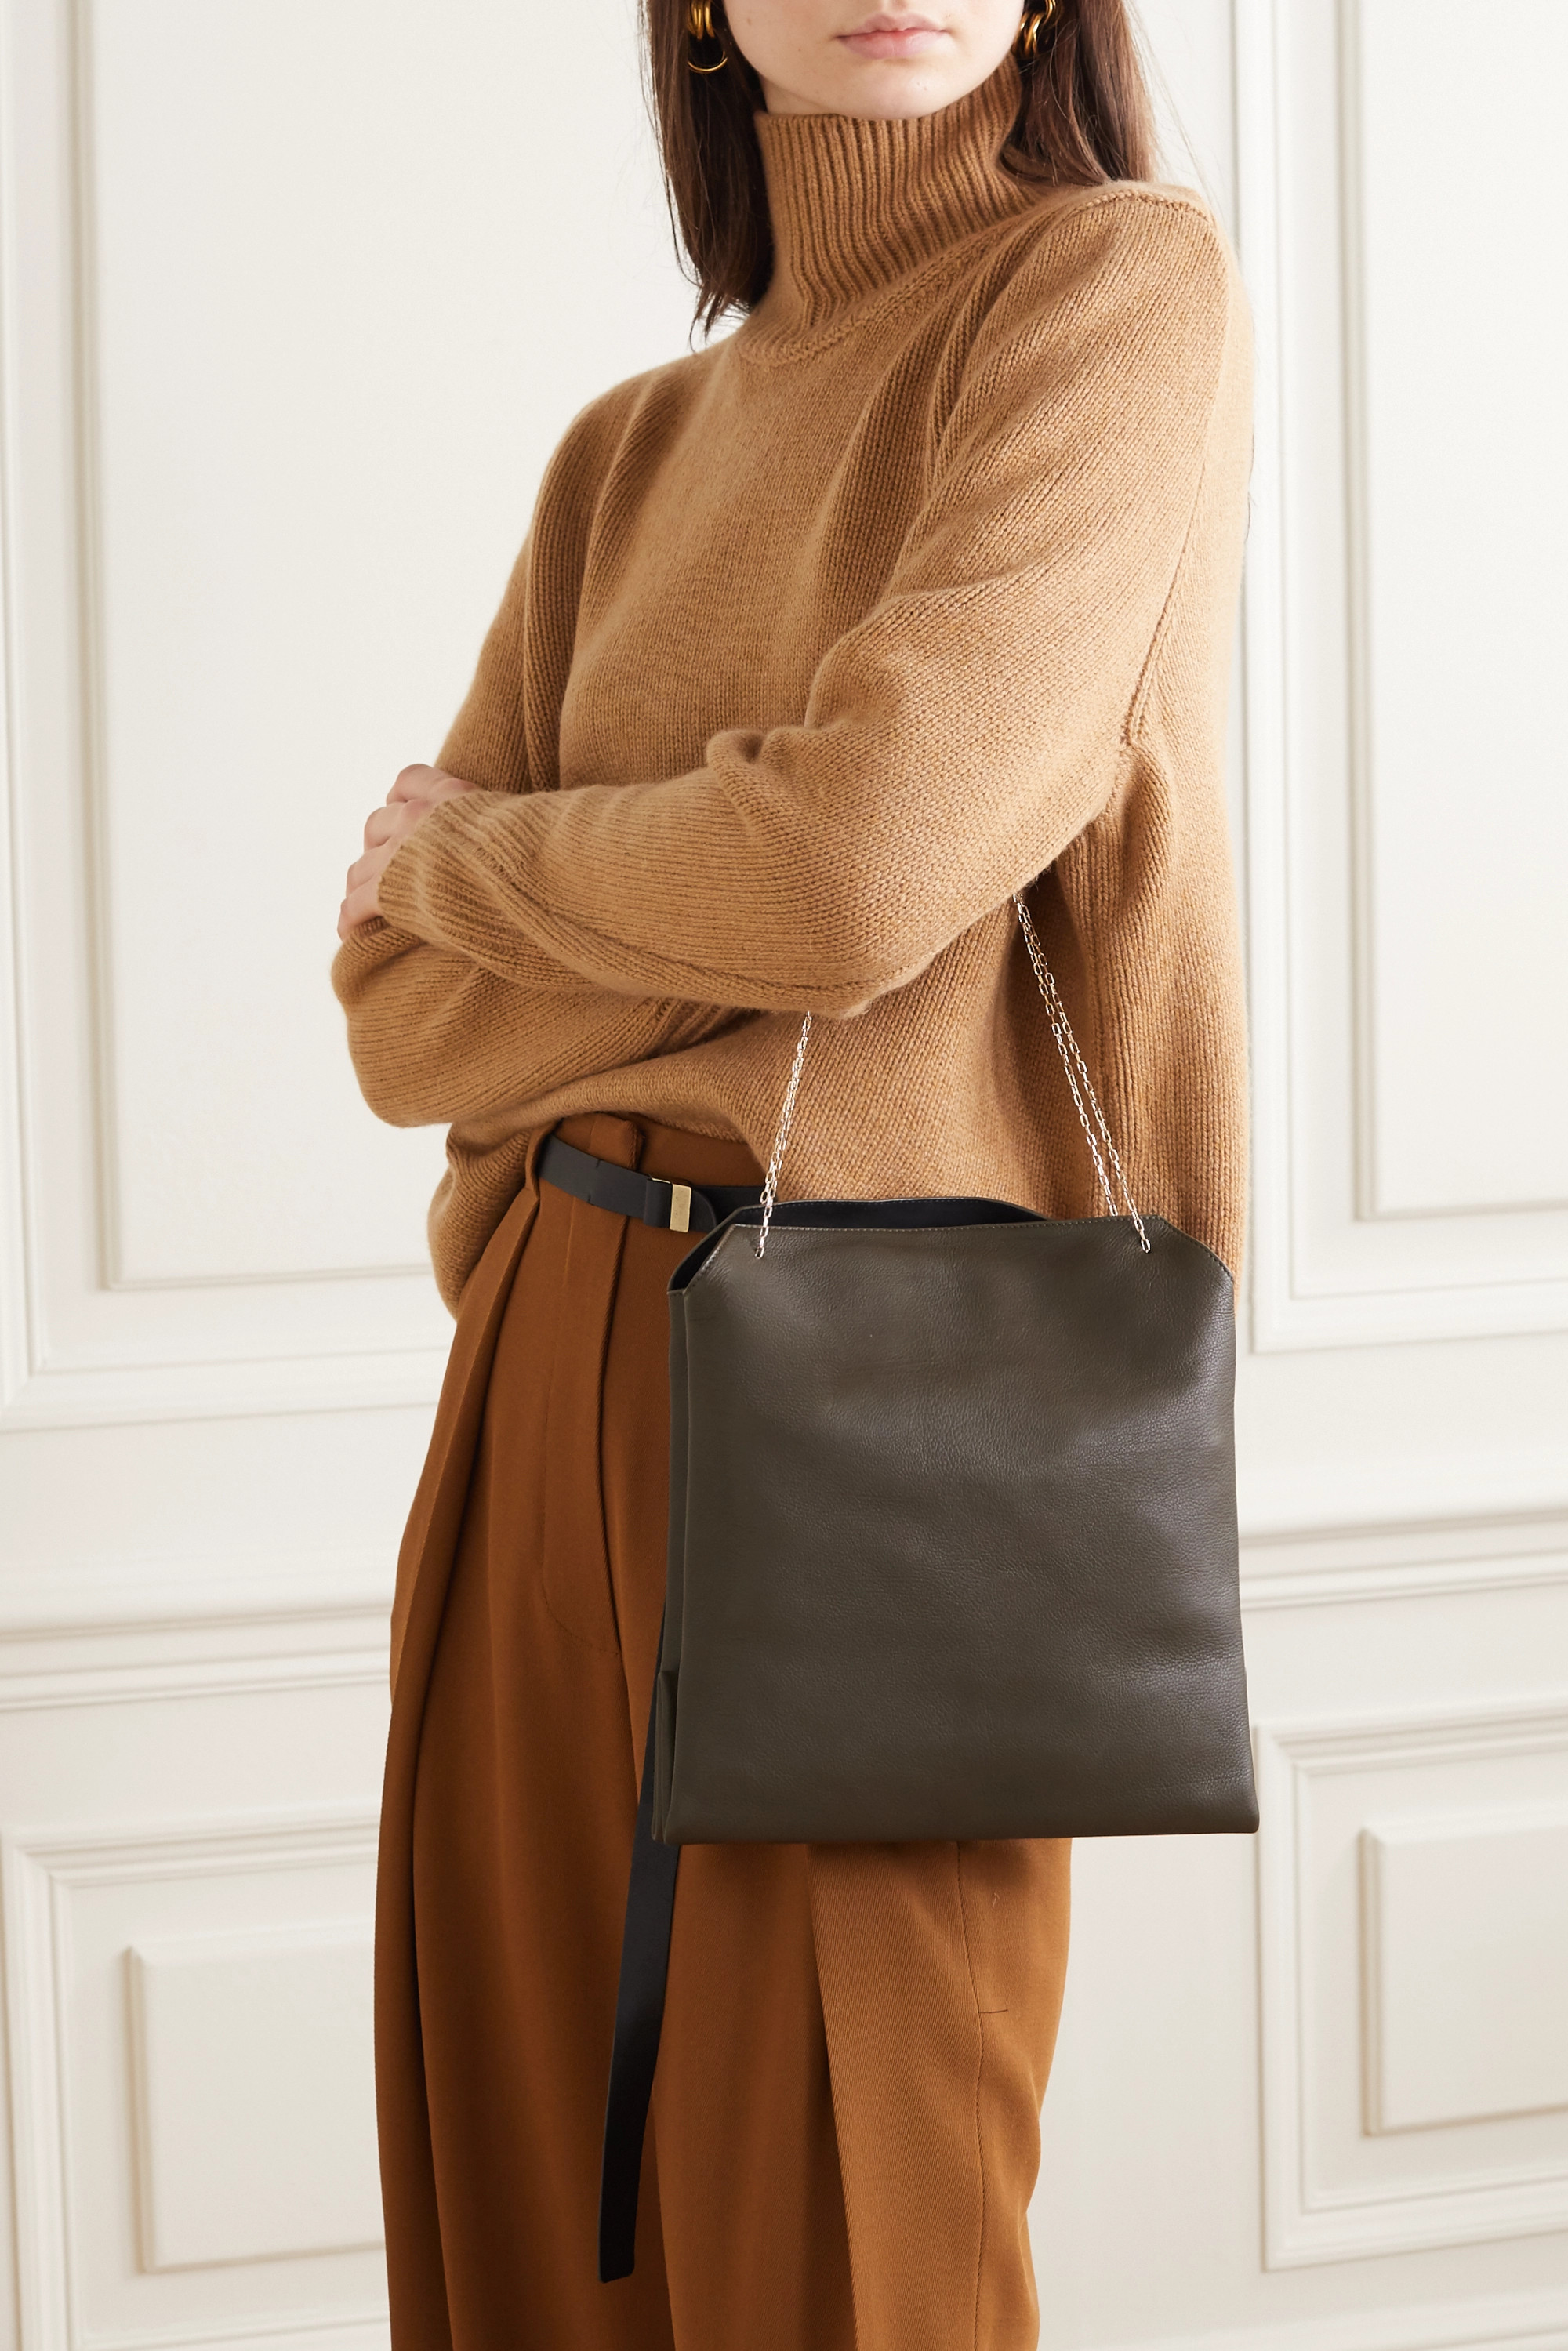 The Row Lunch Bag leather tote